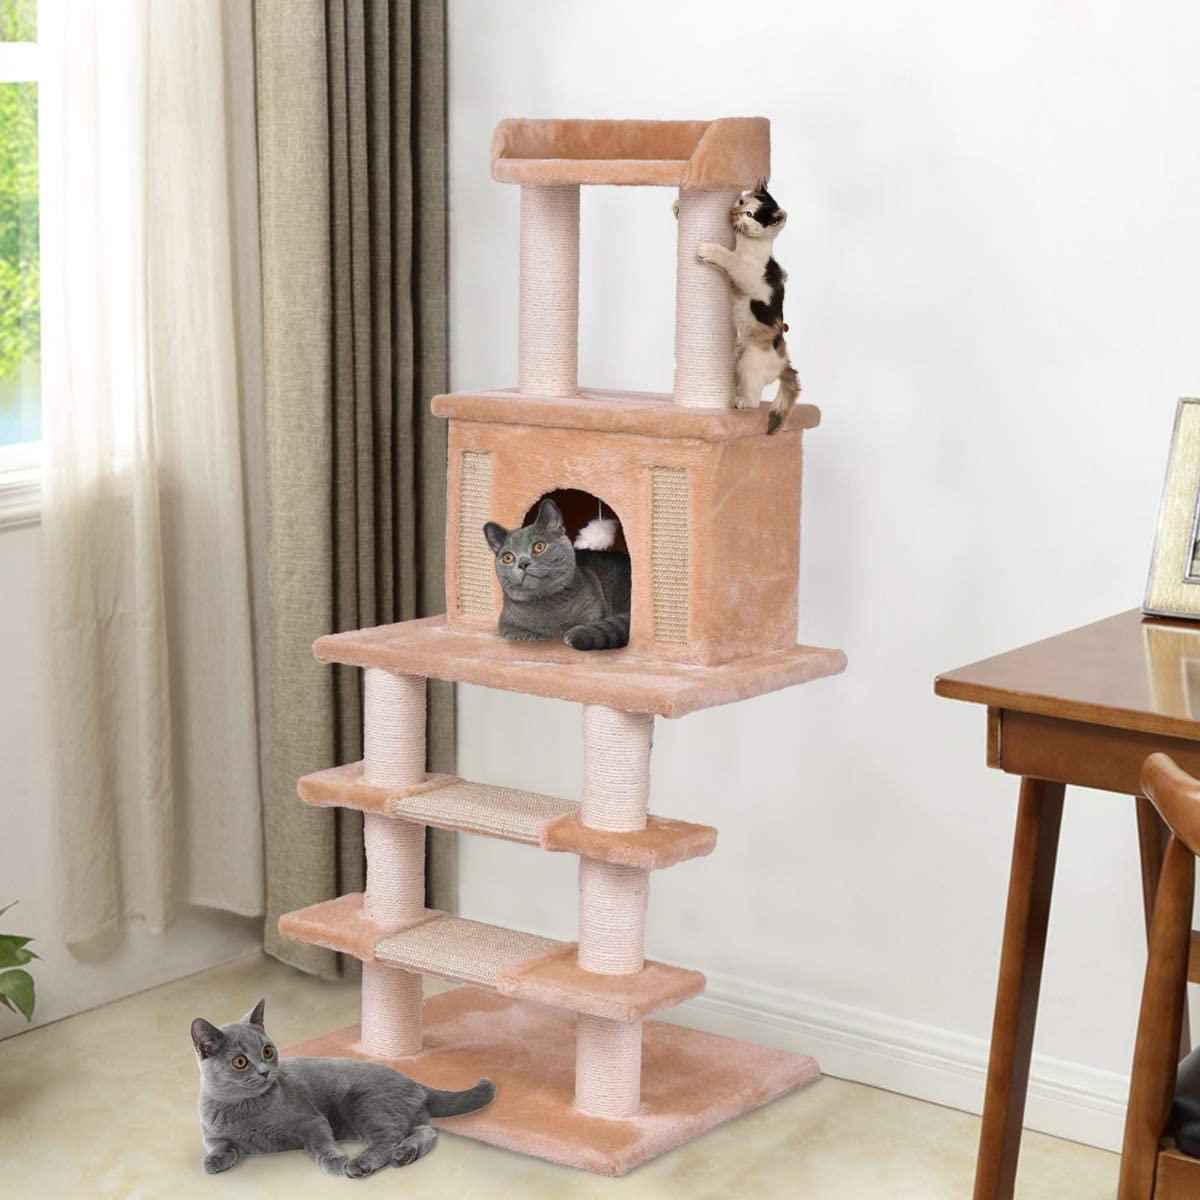 Tangkula Cat Tree with Scratching Post Rope Mouse Kitten Castle Pet Play House Kitte Tower Activity Tree 52